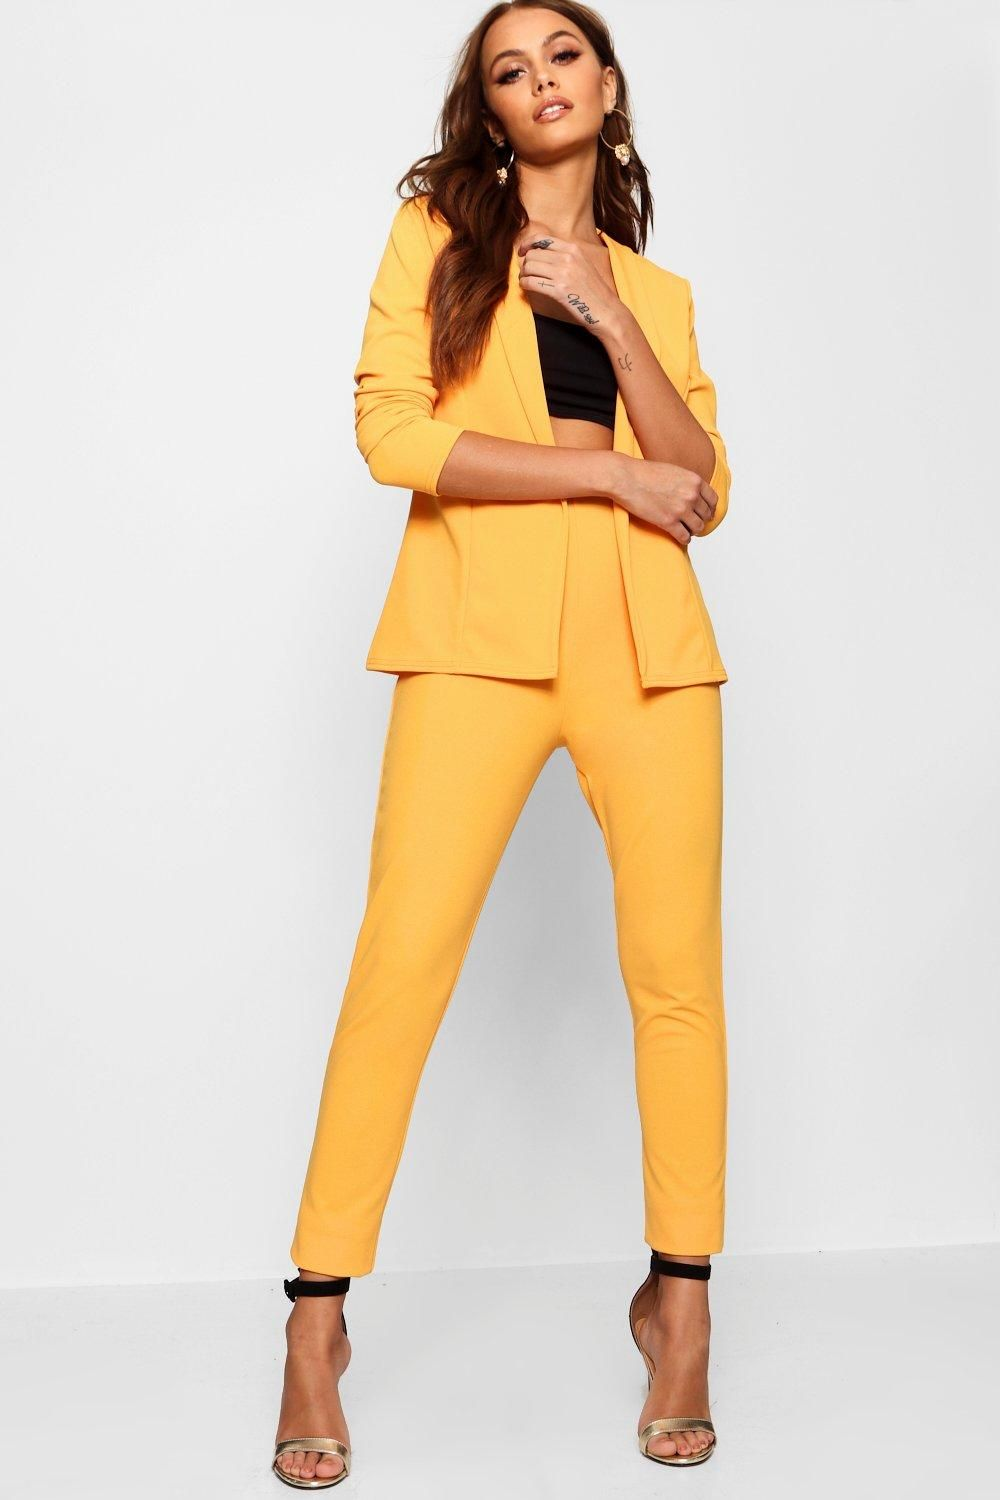 e251c38fd51e2 Click here to find out about the Ella Crepe Fitted Suit from Boohoo, part  of our latest NEW IN collection ready to shop online today!